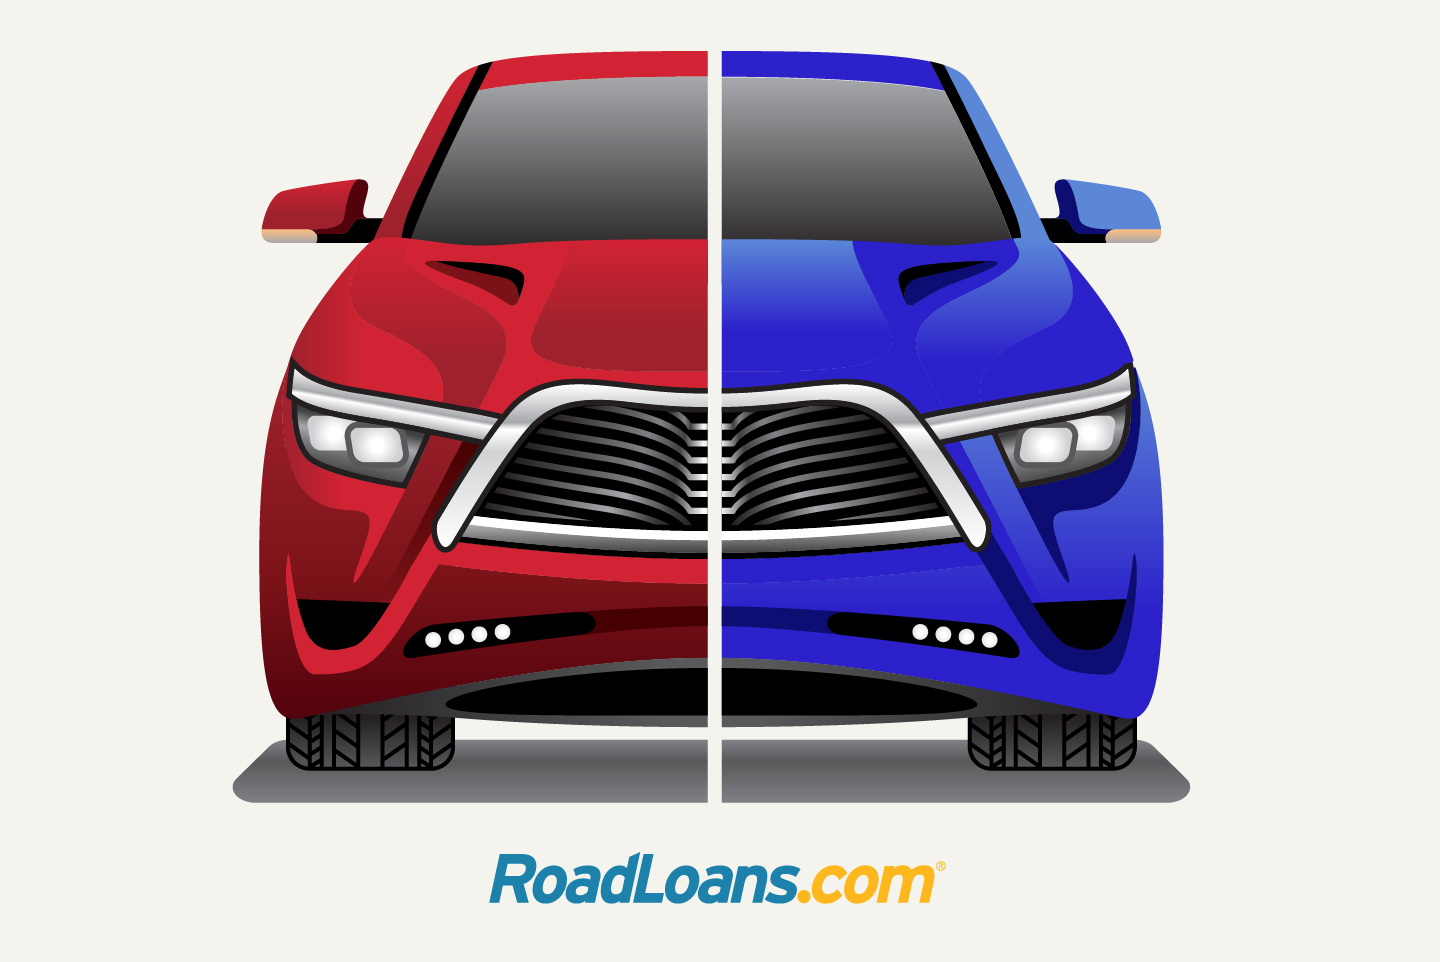 new vs used auto loans a quick comparison for car buyers roadloans. Black Bedroom Furniture Sets. Home Design Ideas